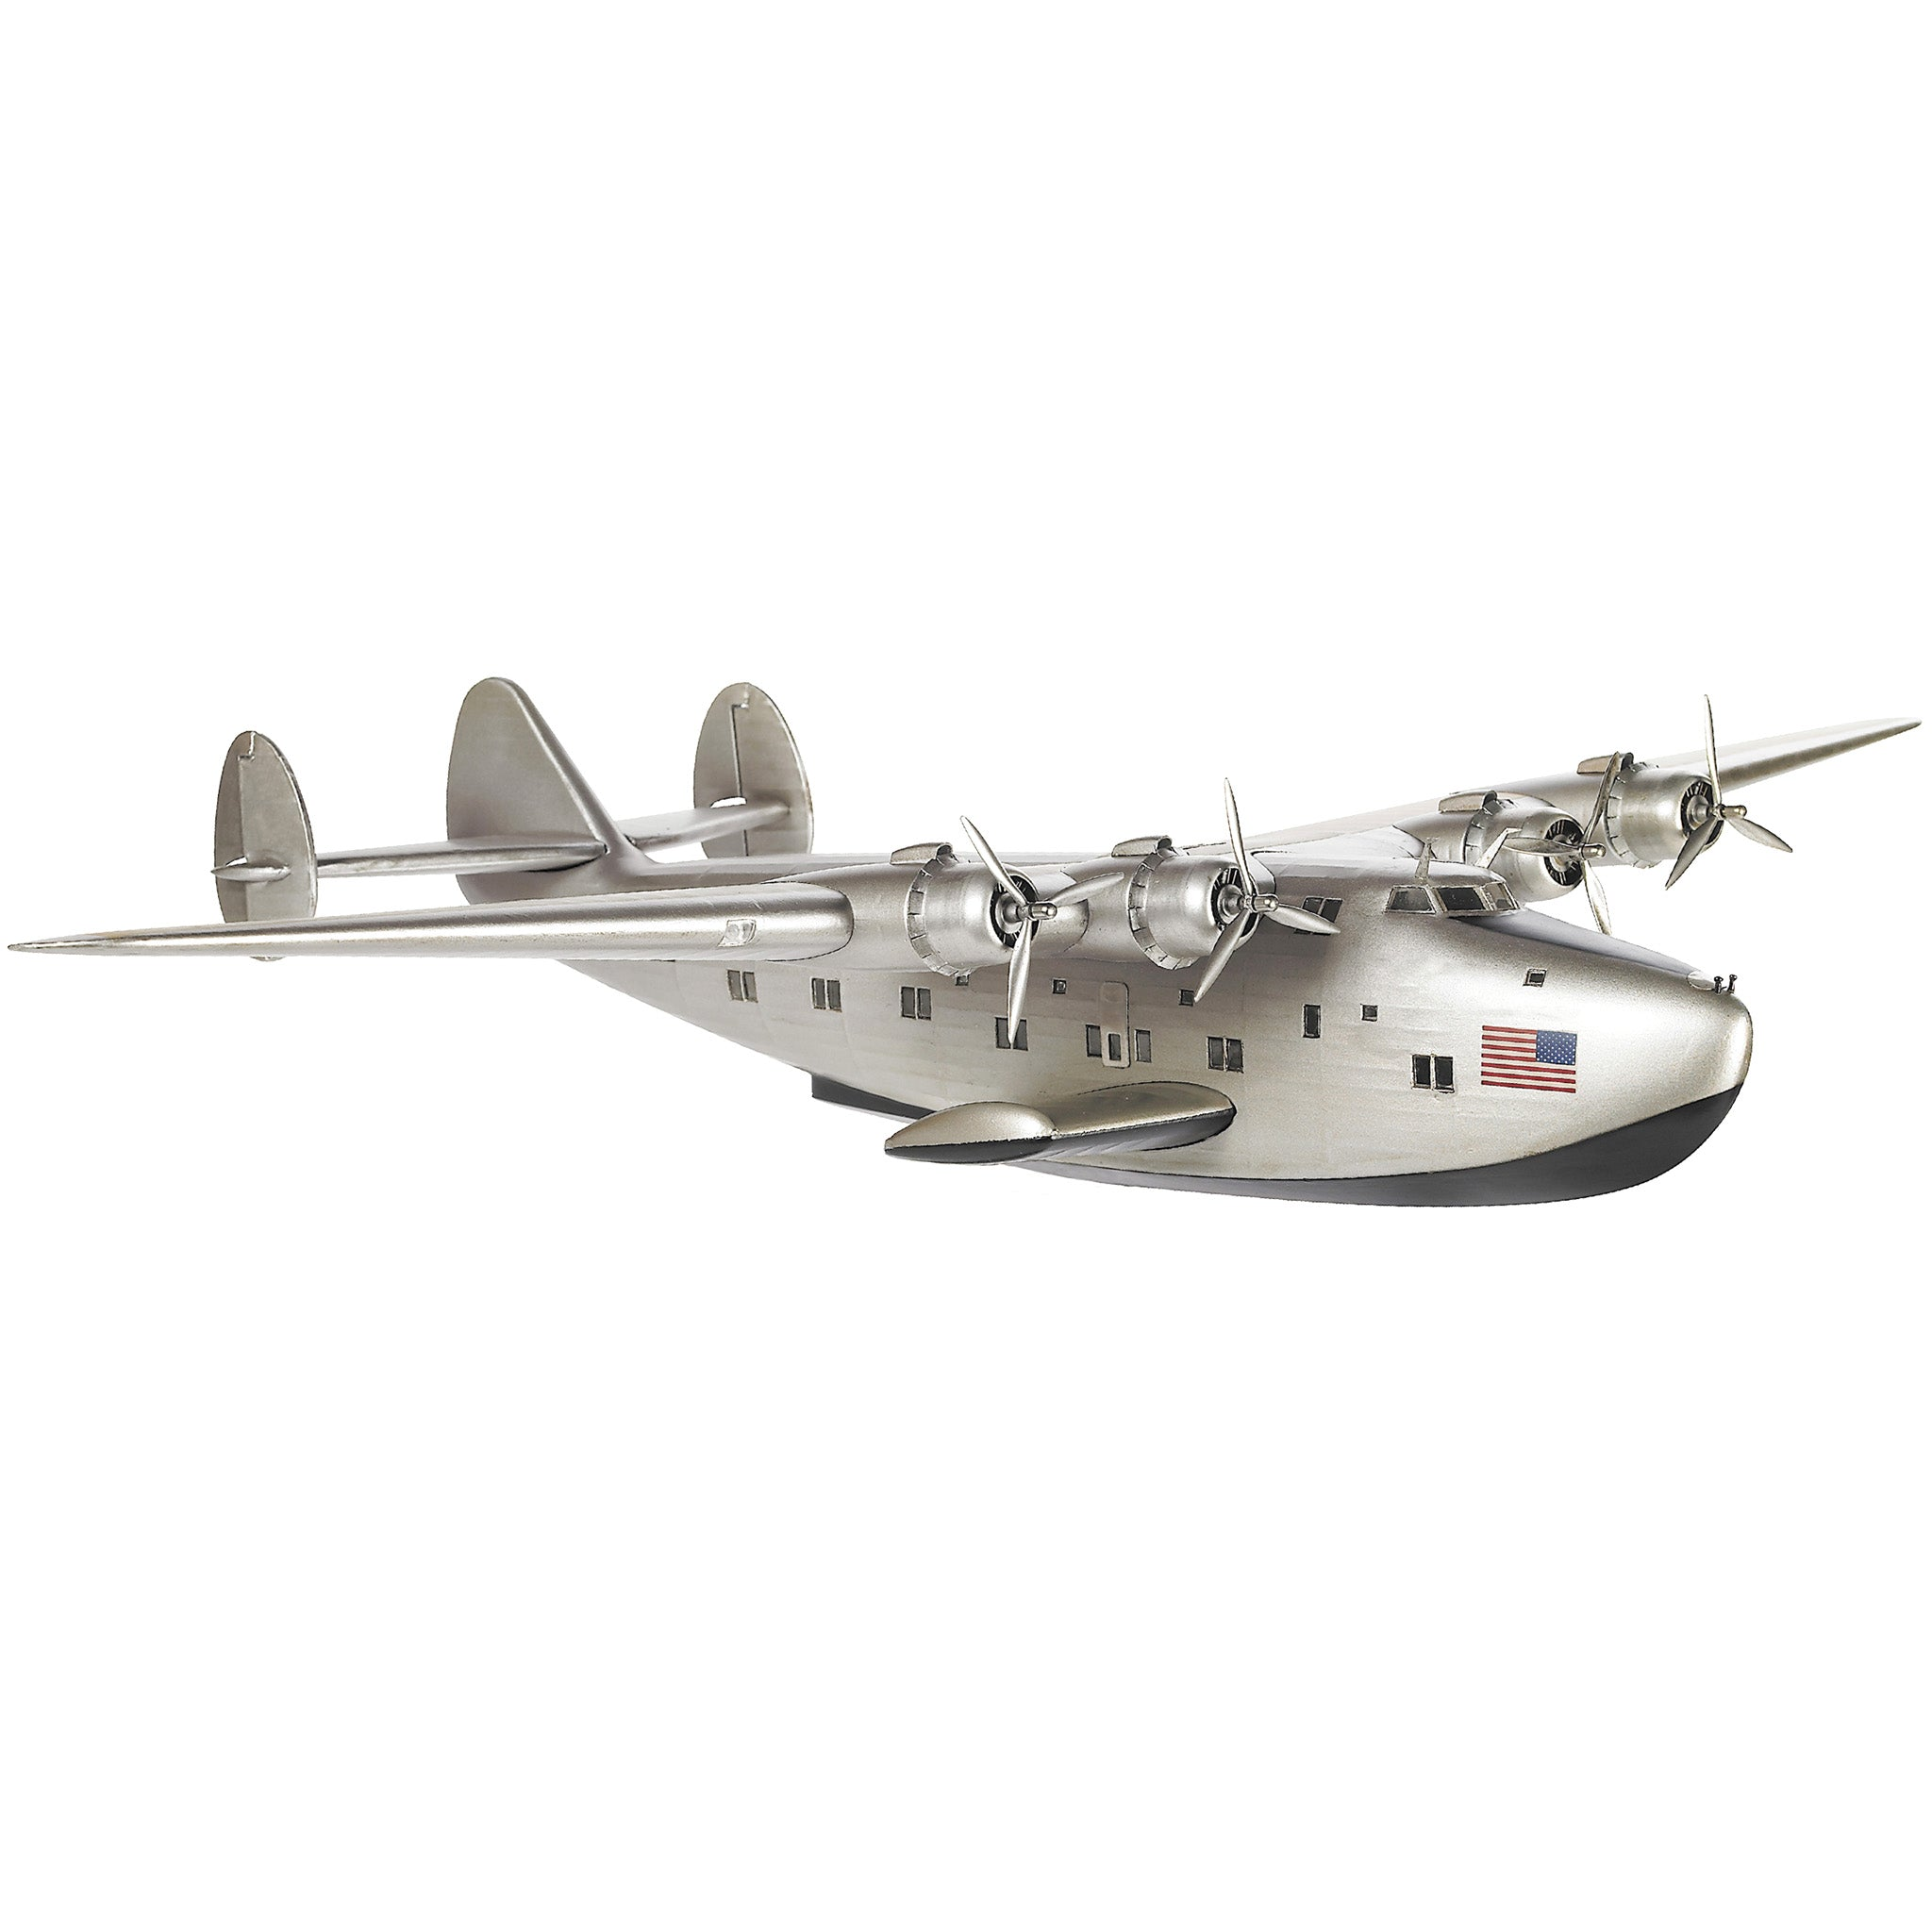 Boeing 314 Dixie Clipper the Flying Boat Scale Model Plane